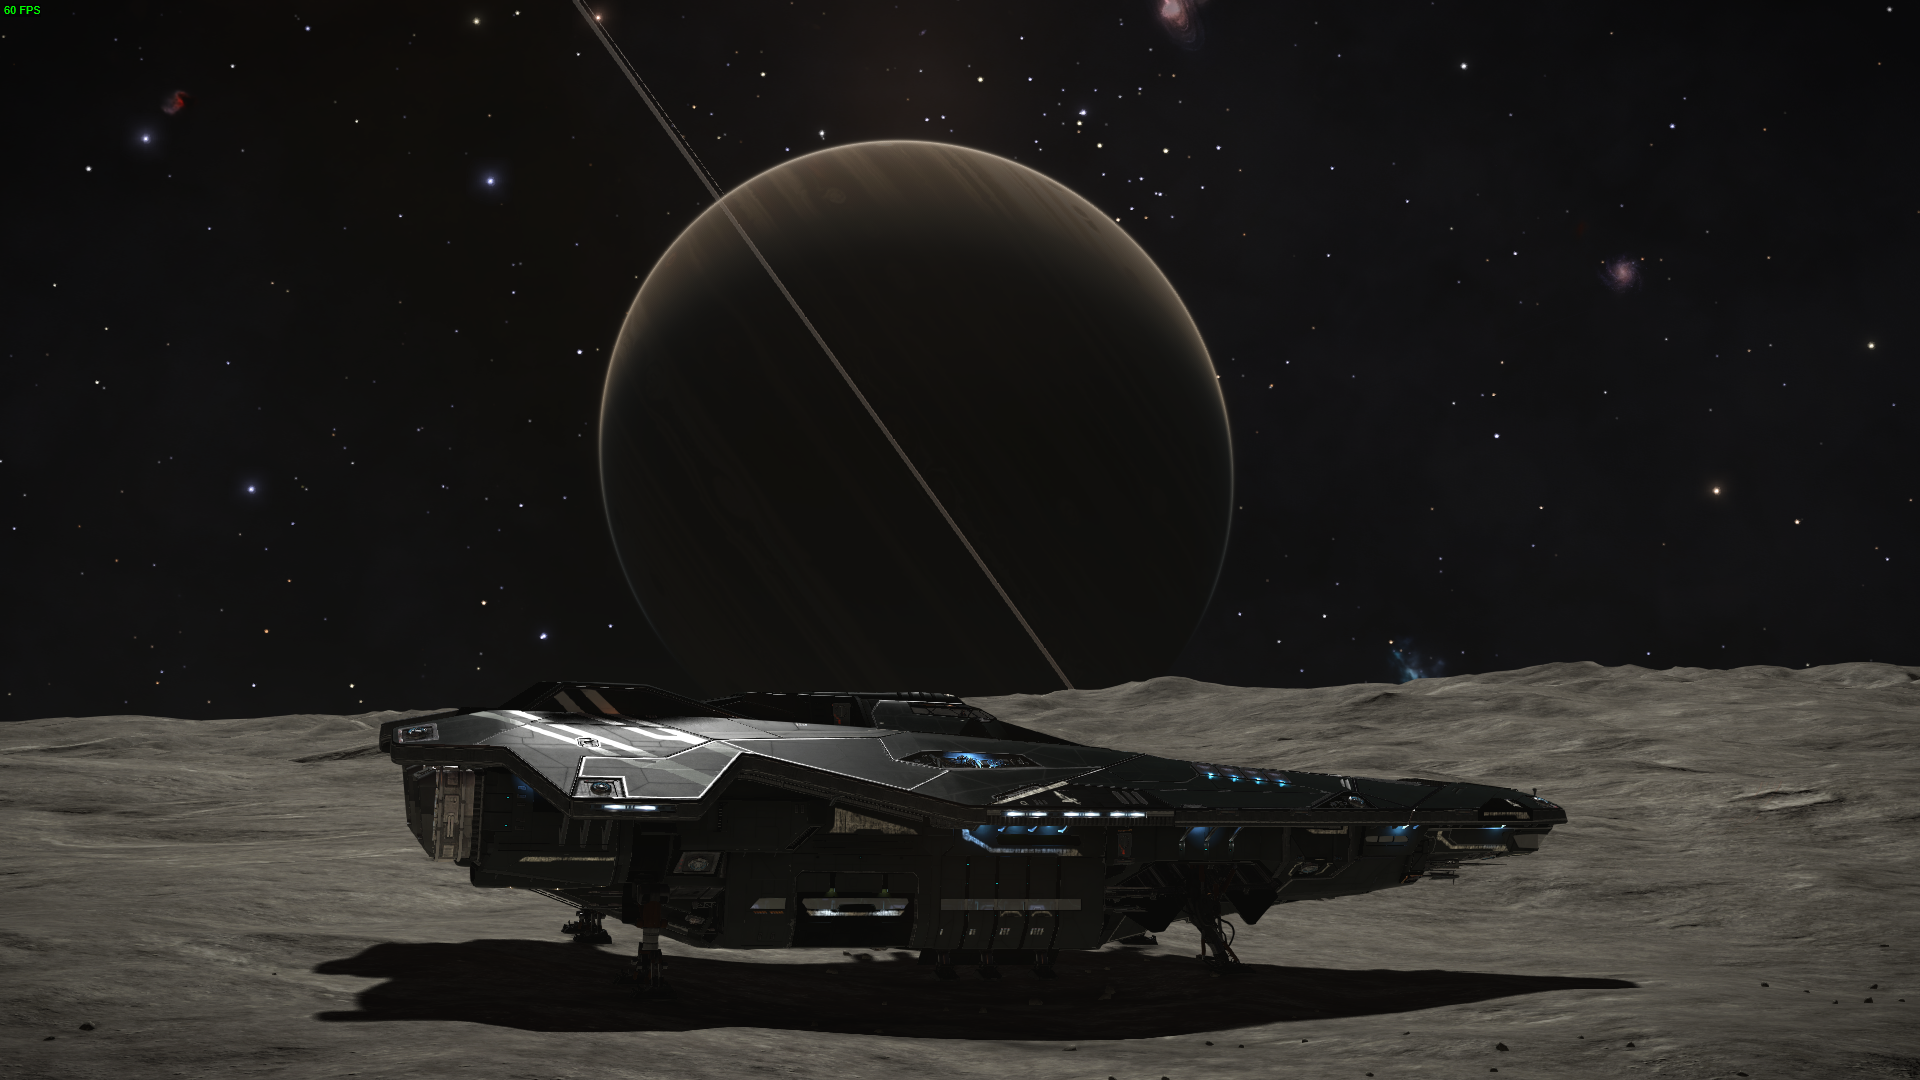 Elite Dangerous Screenshots - Ship Landing On A Planet